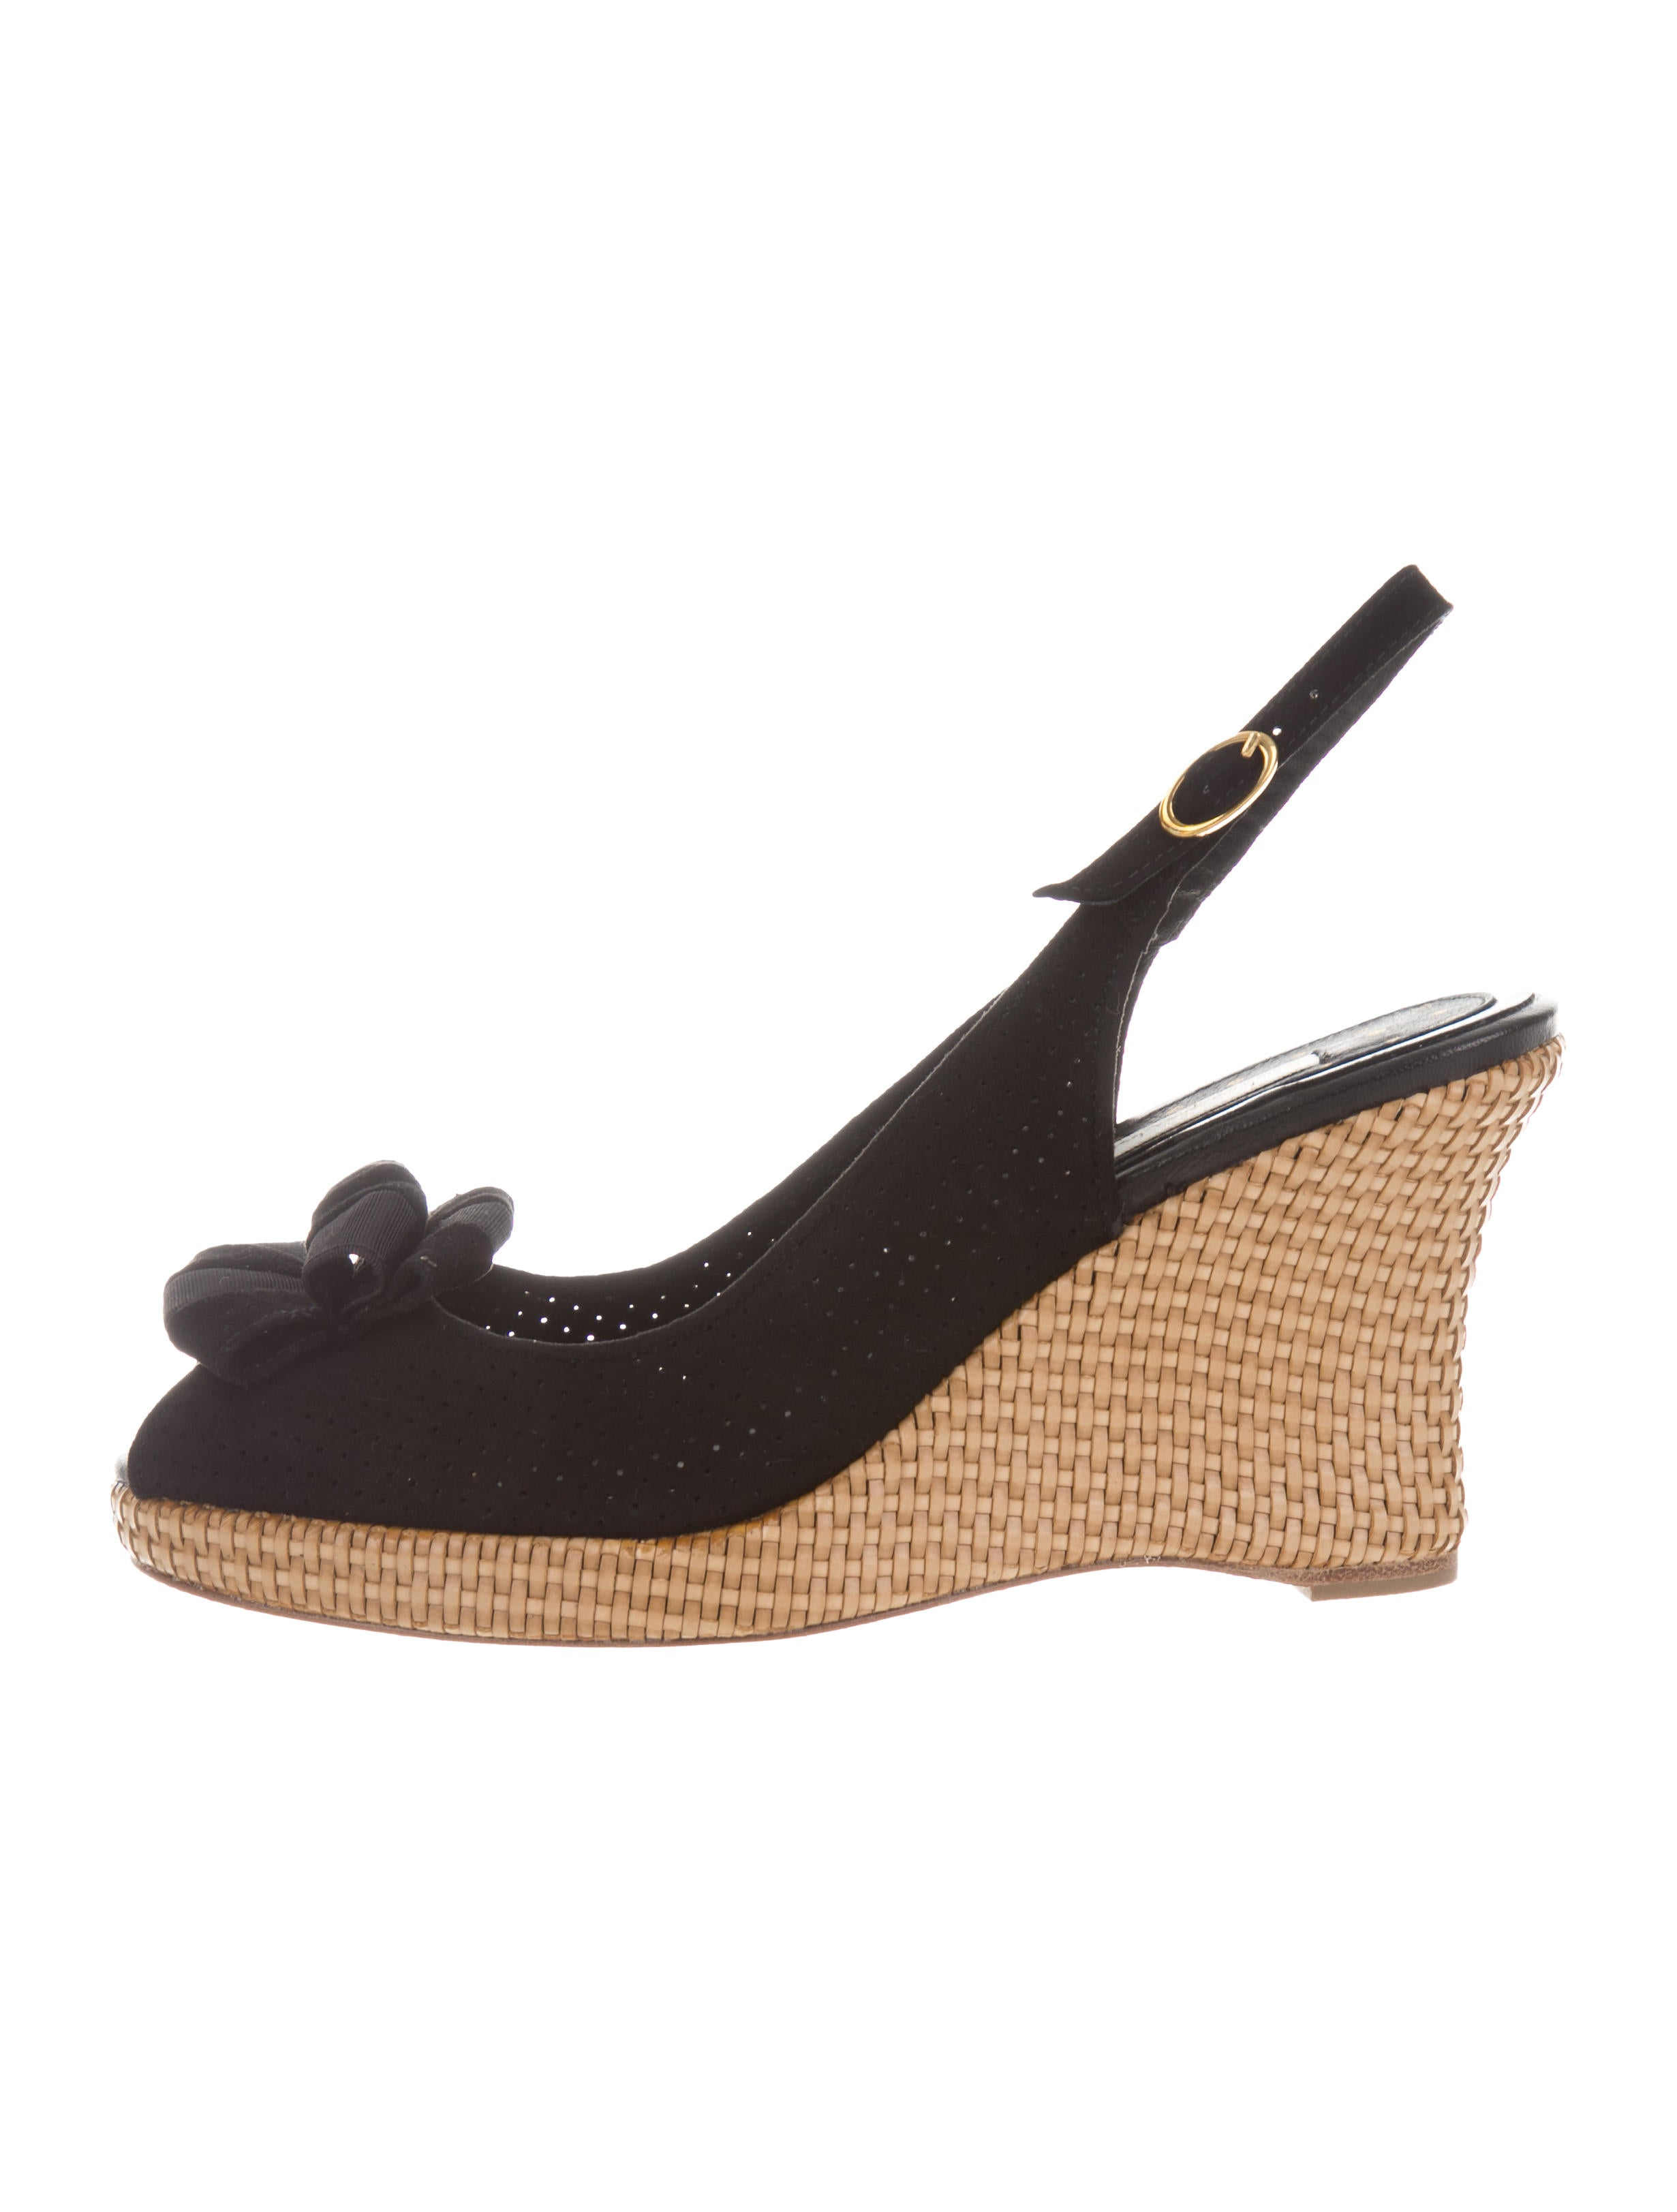 free shipping brand new unisex Lulu Guinness Suede Peep-Toe Wedges w/ Tags release dates for sale clearance shop offer on hot sale eKbbWSCsQb